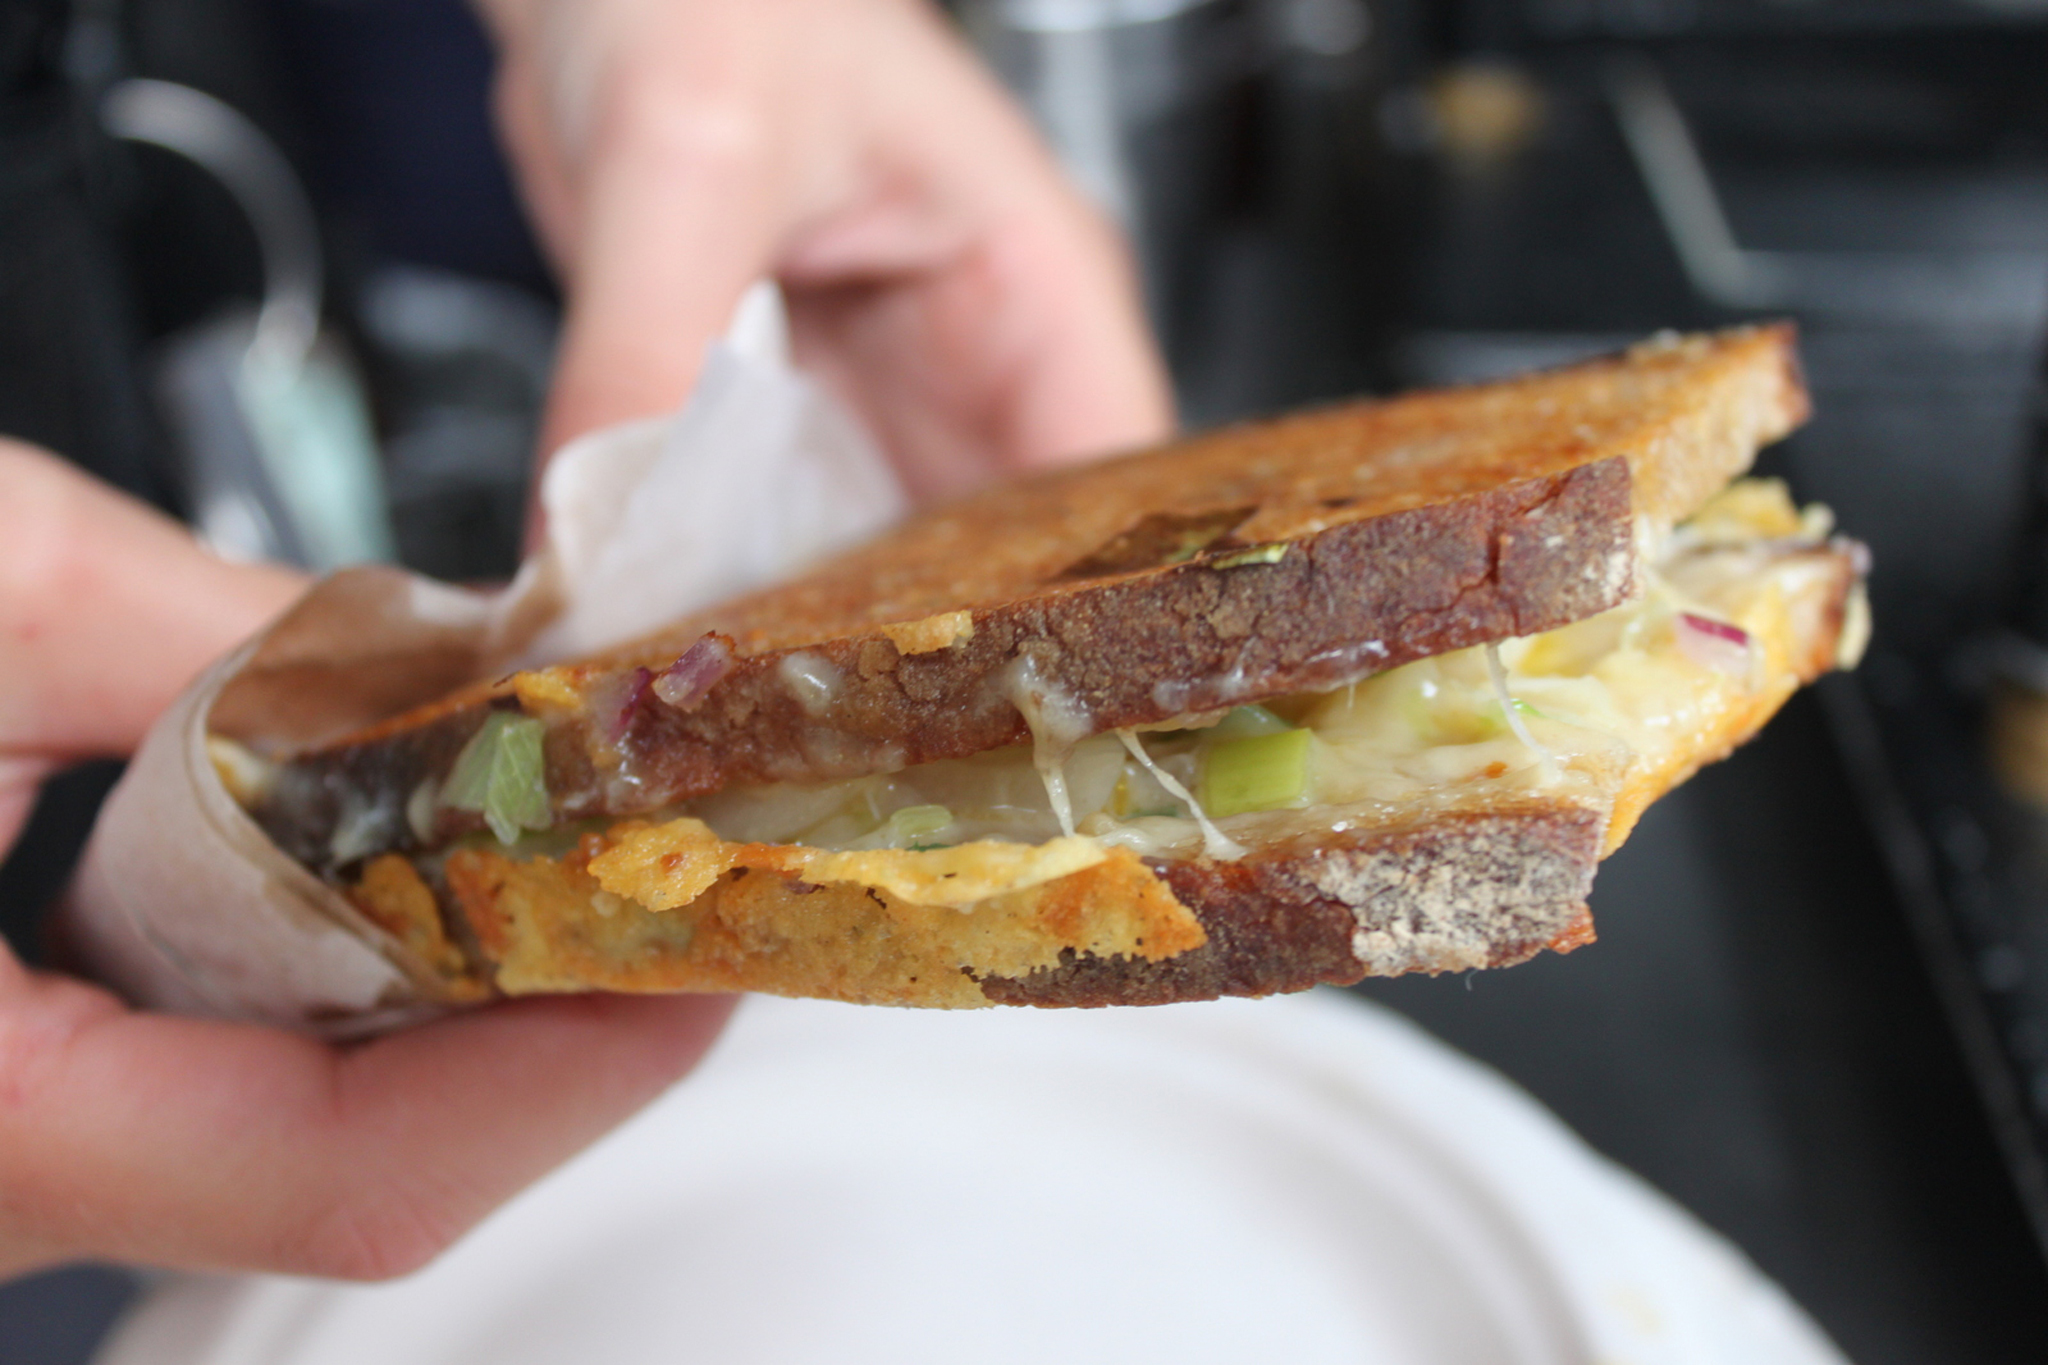 100 best dishes in London - kappacasein - grilled cheese sandwich